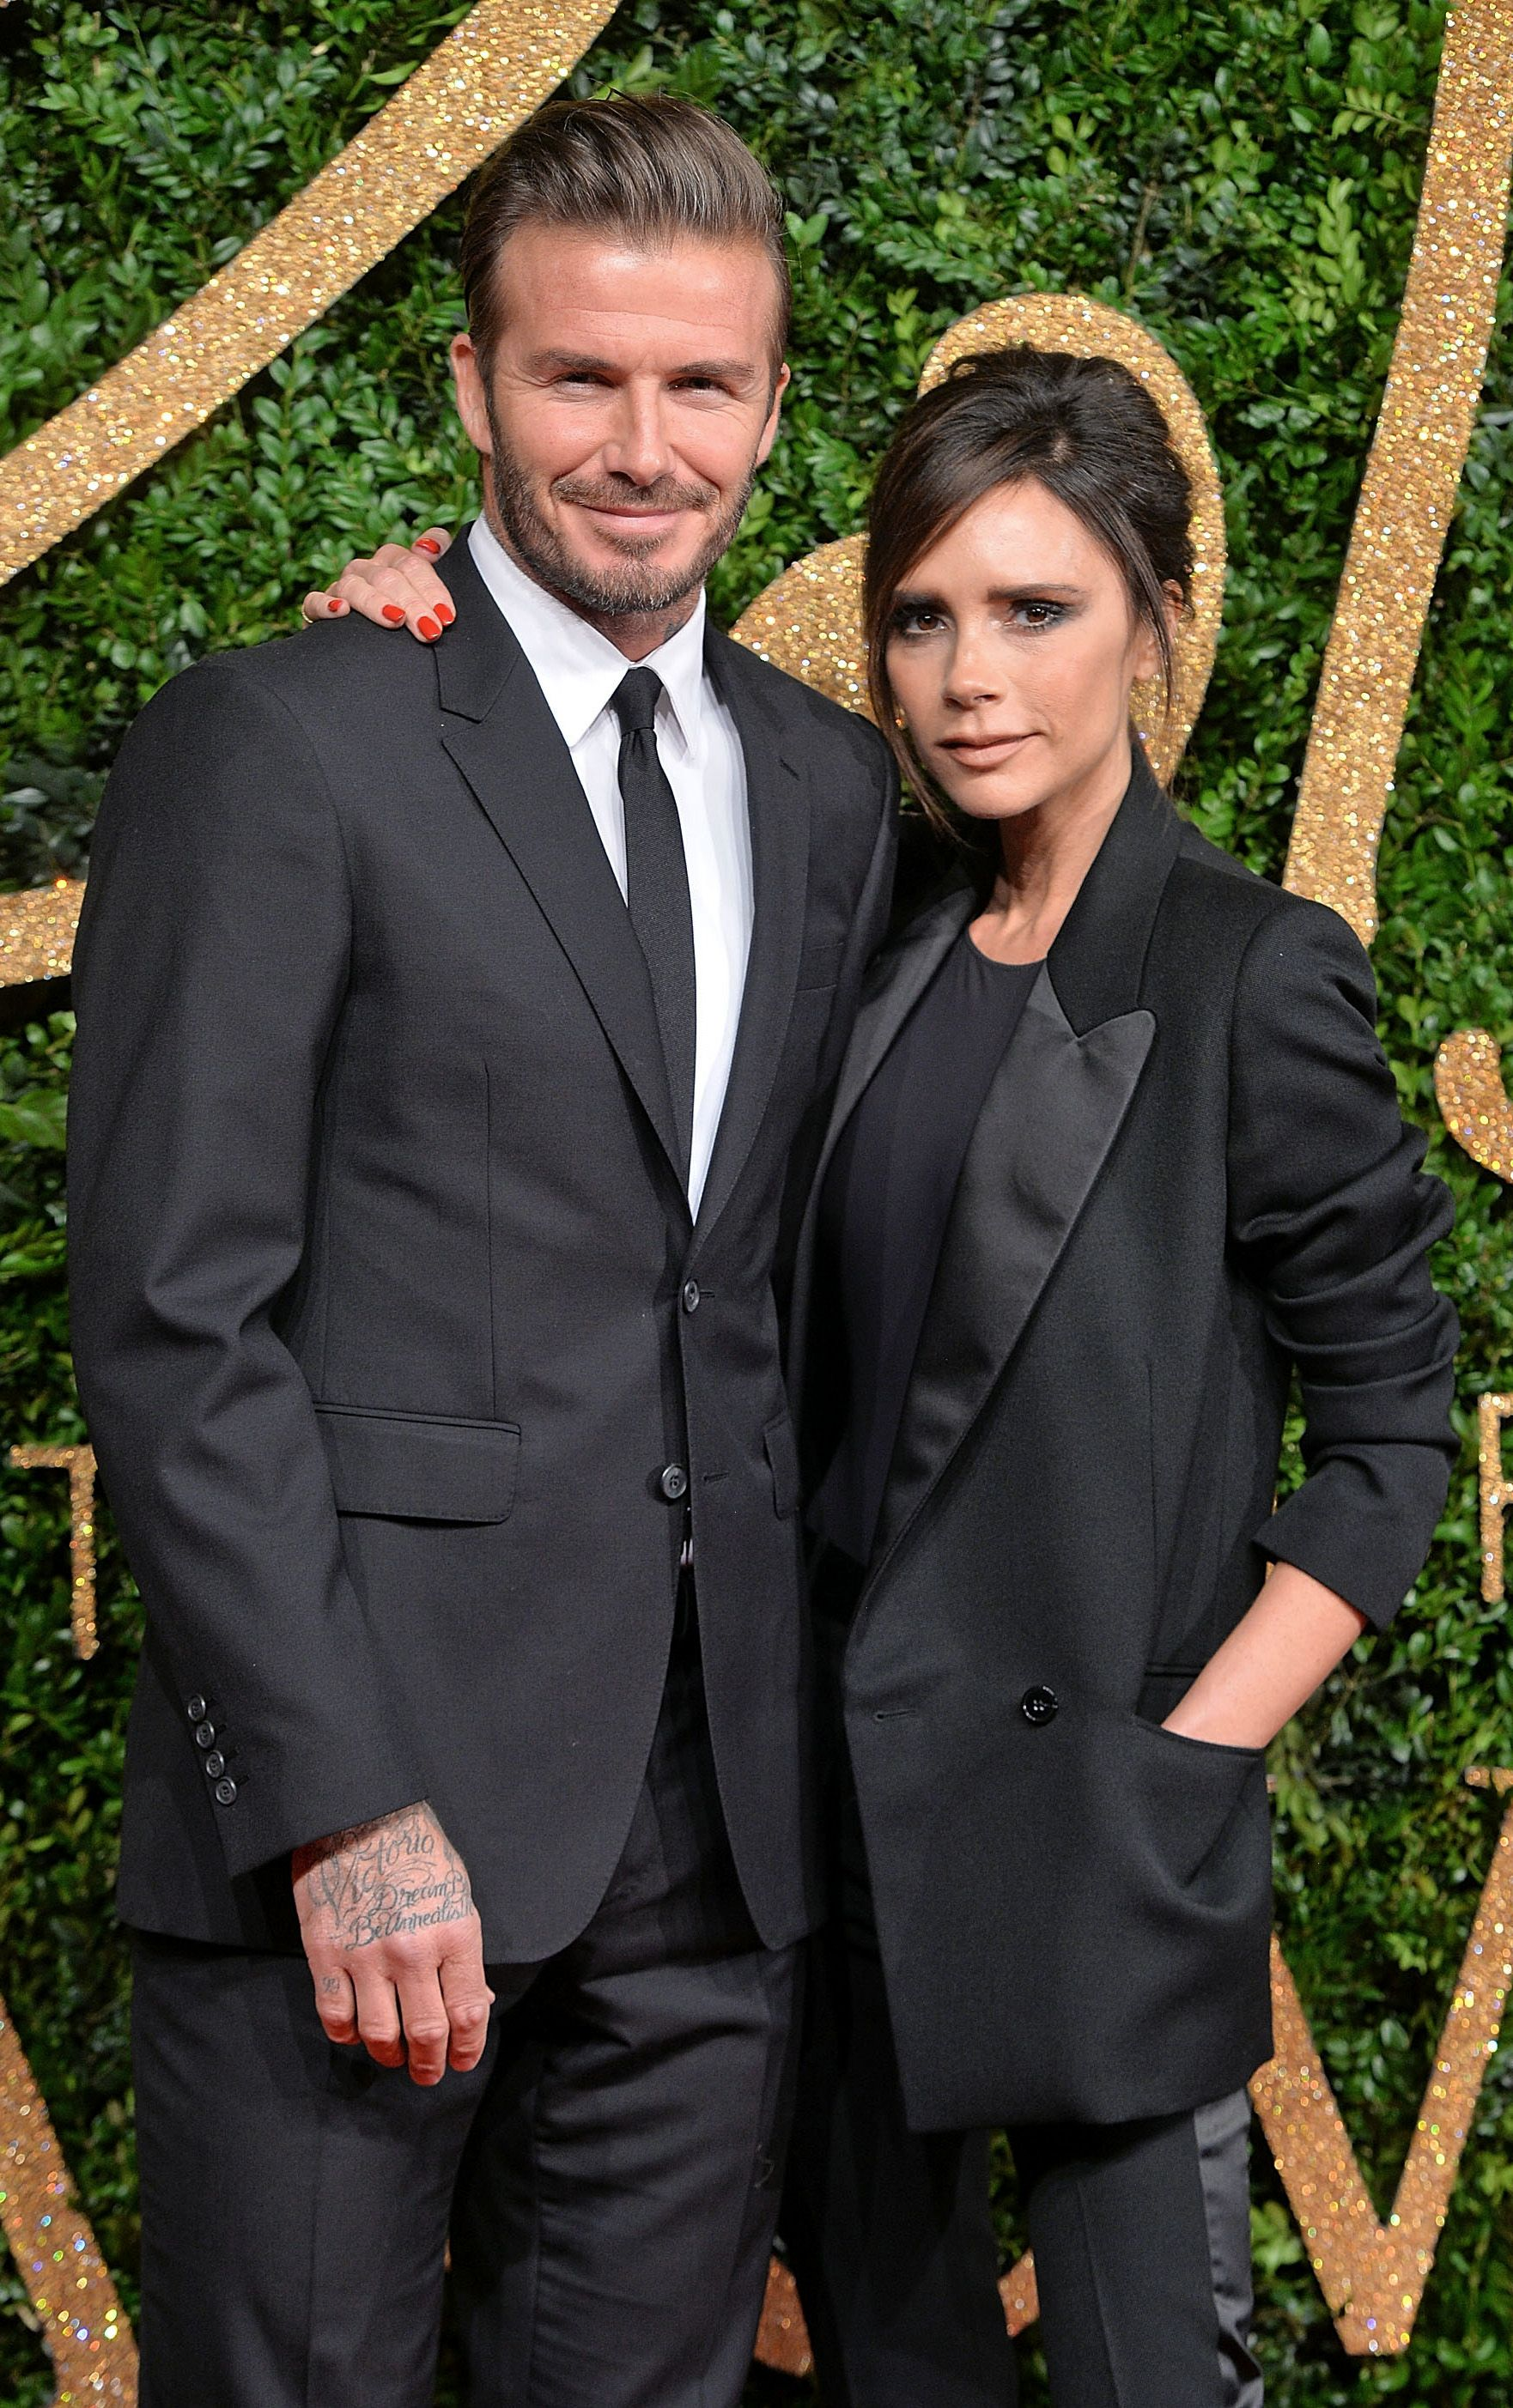 Celebs Married Crush David Beckham Victoria Beckham